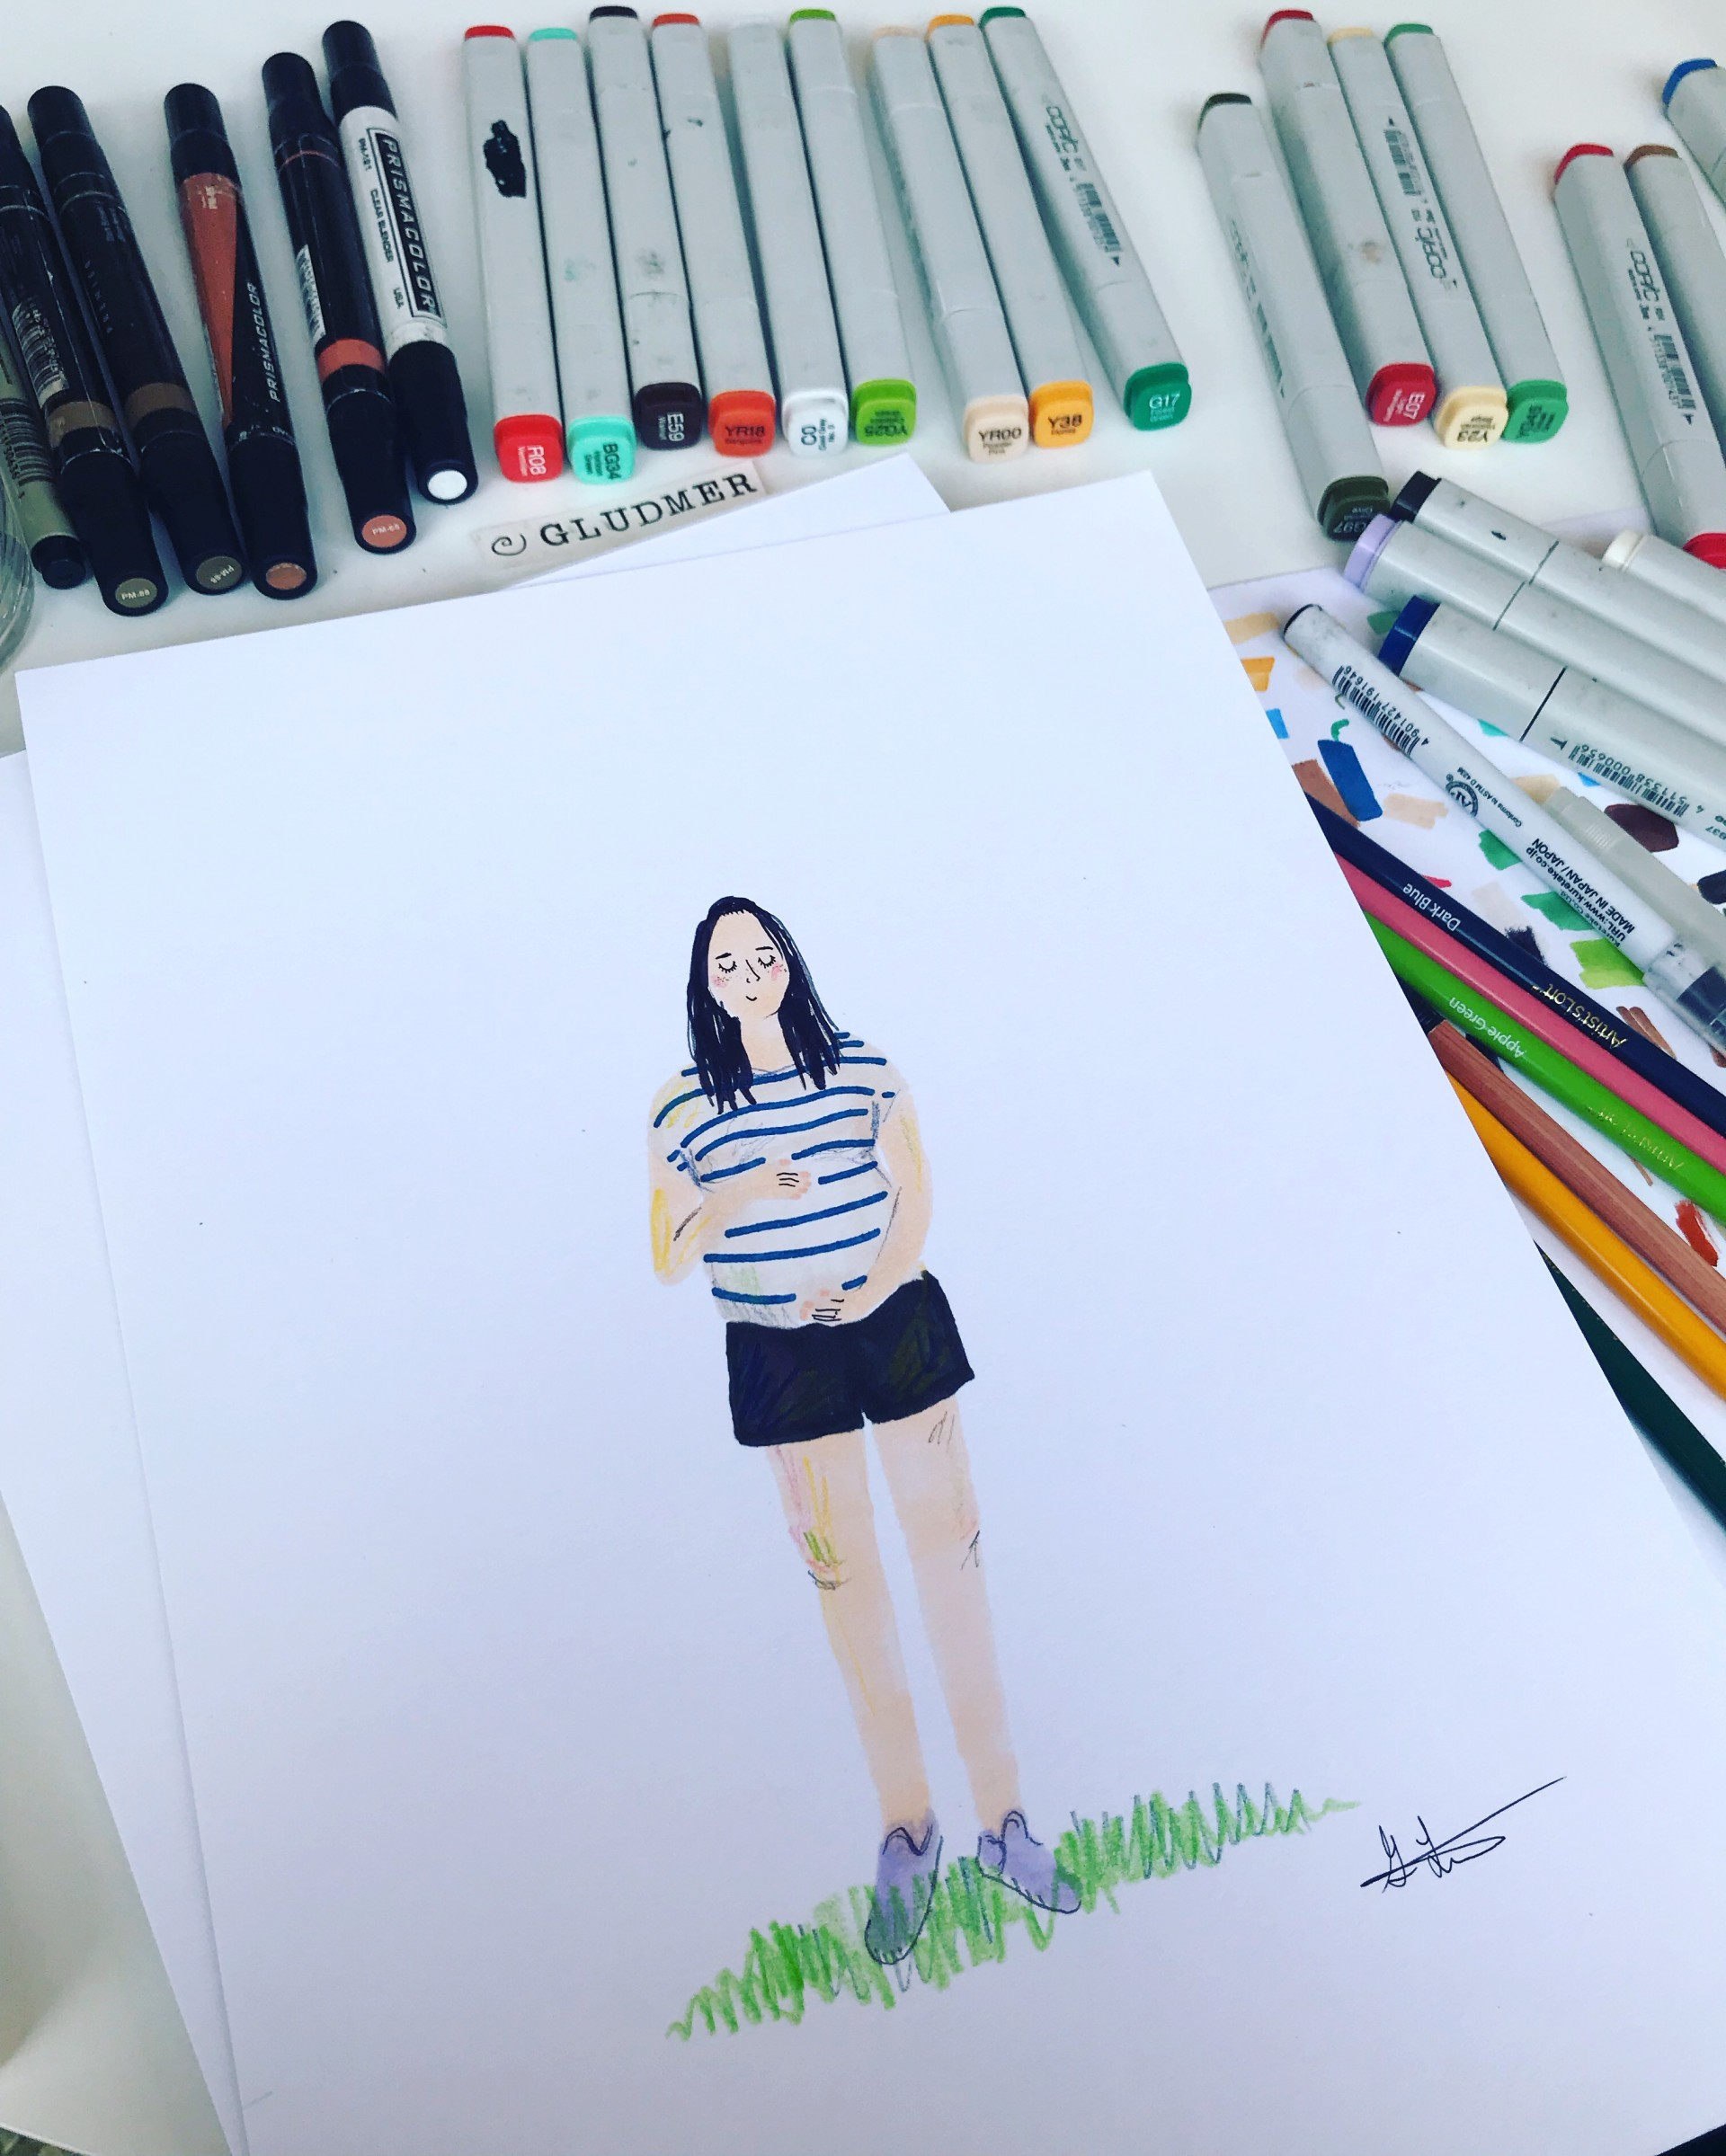 Markers surrounding portrait of pregnant woman wearing striped shirt and black shorts.